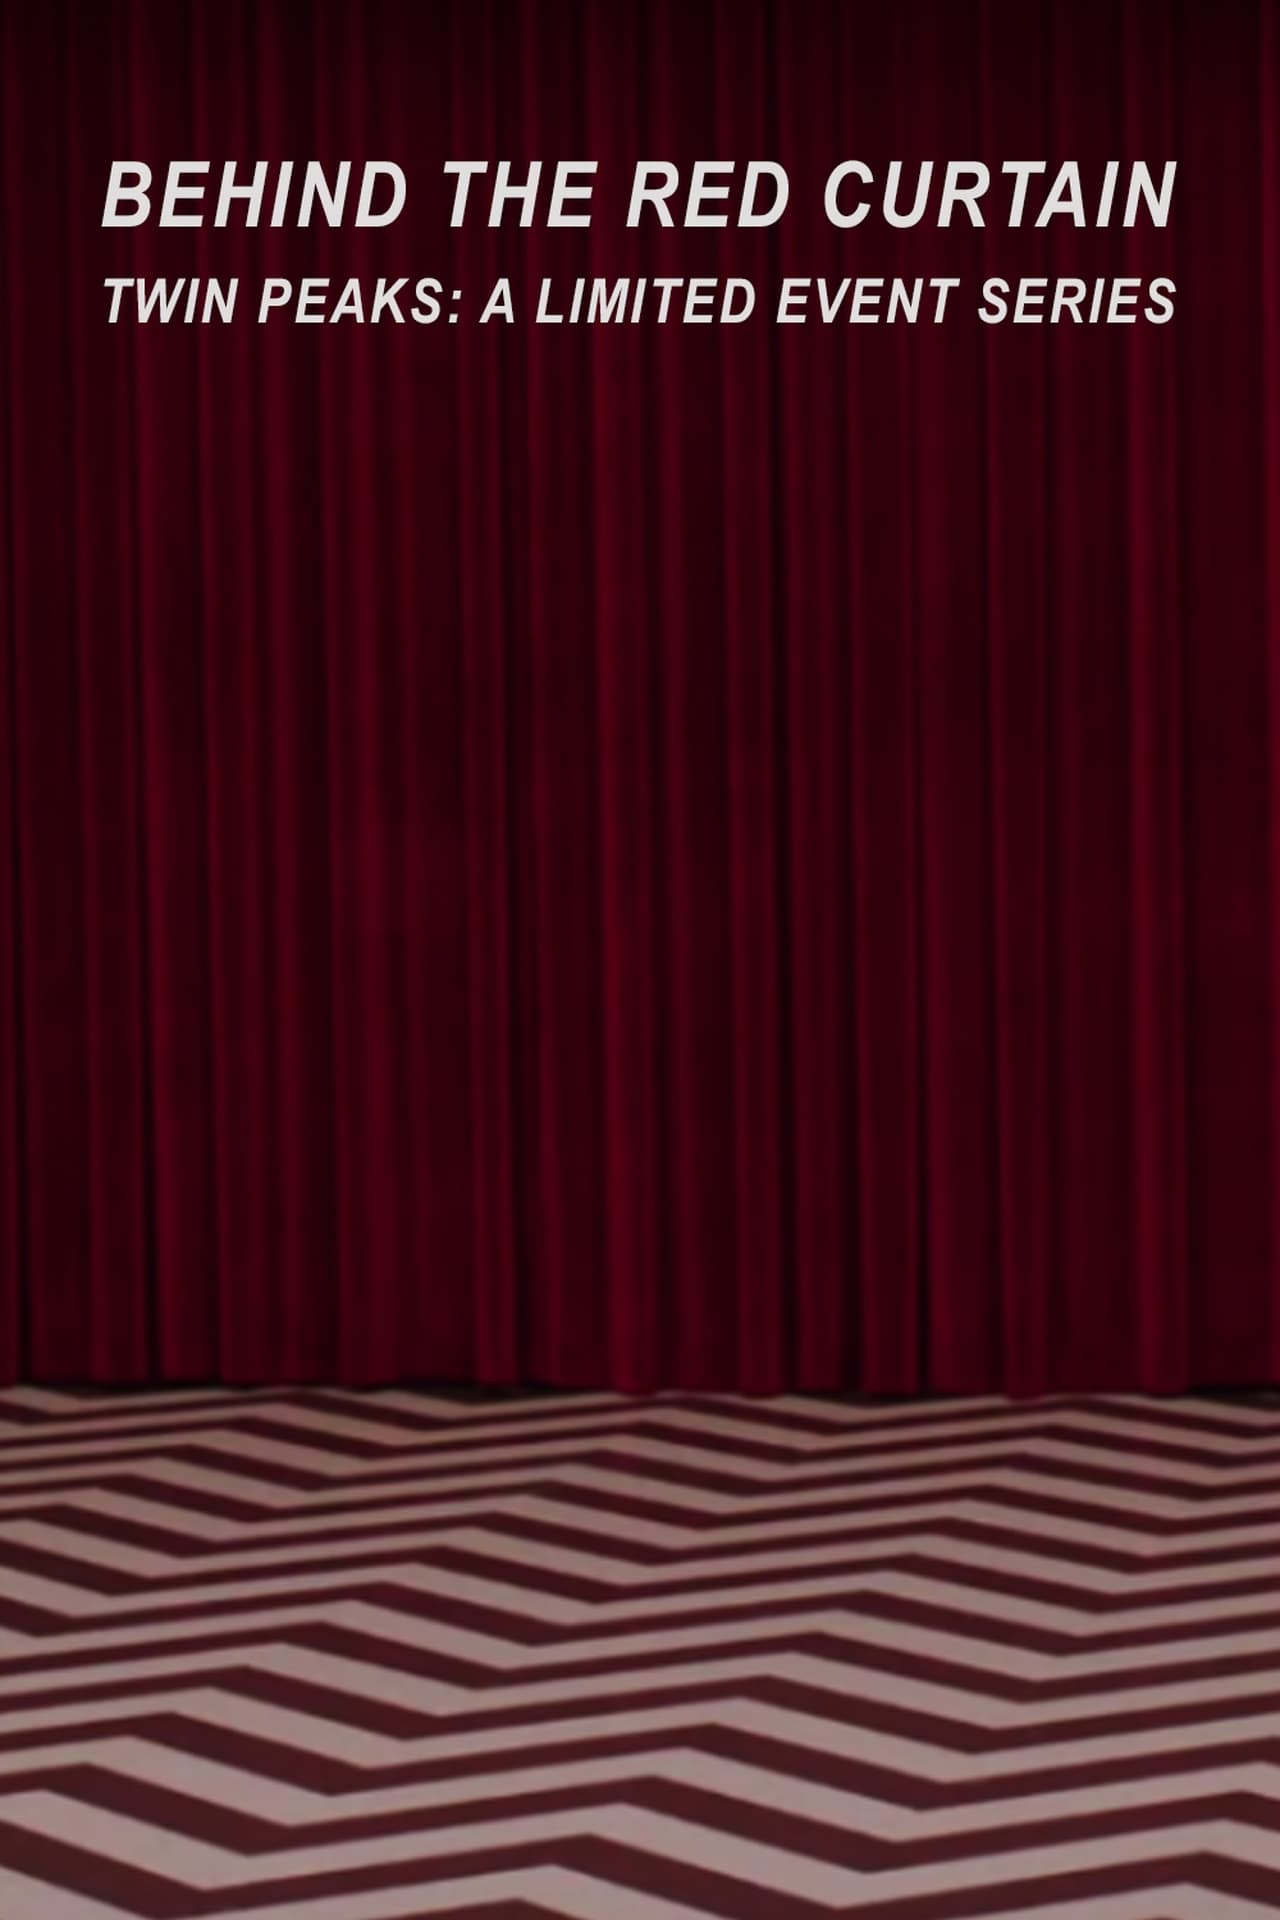 Behind the Red Curtain